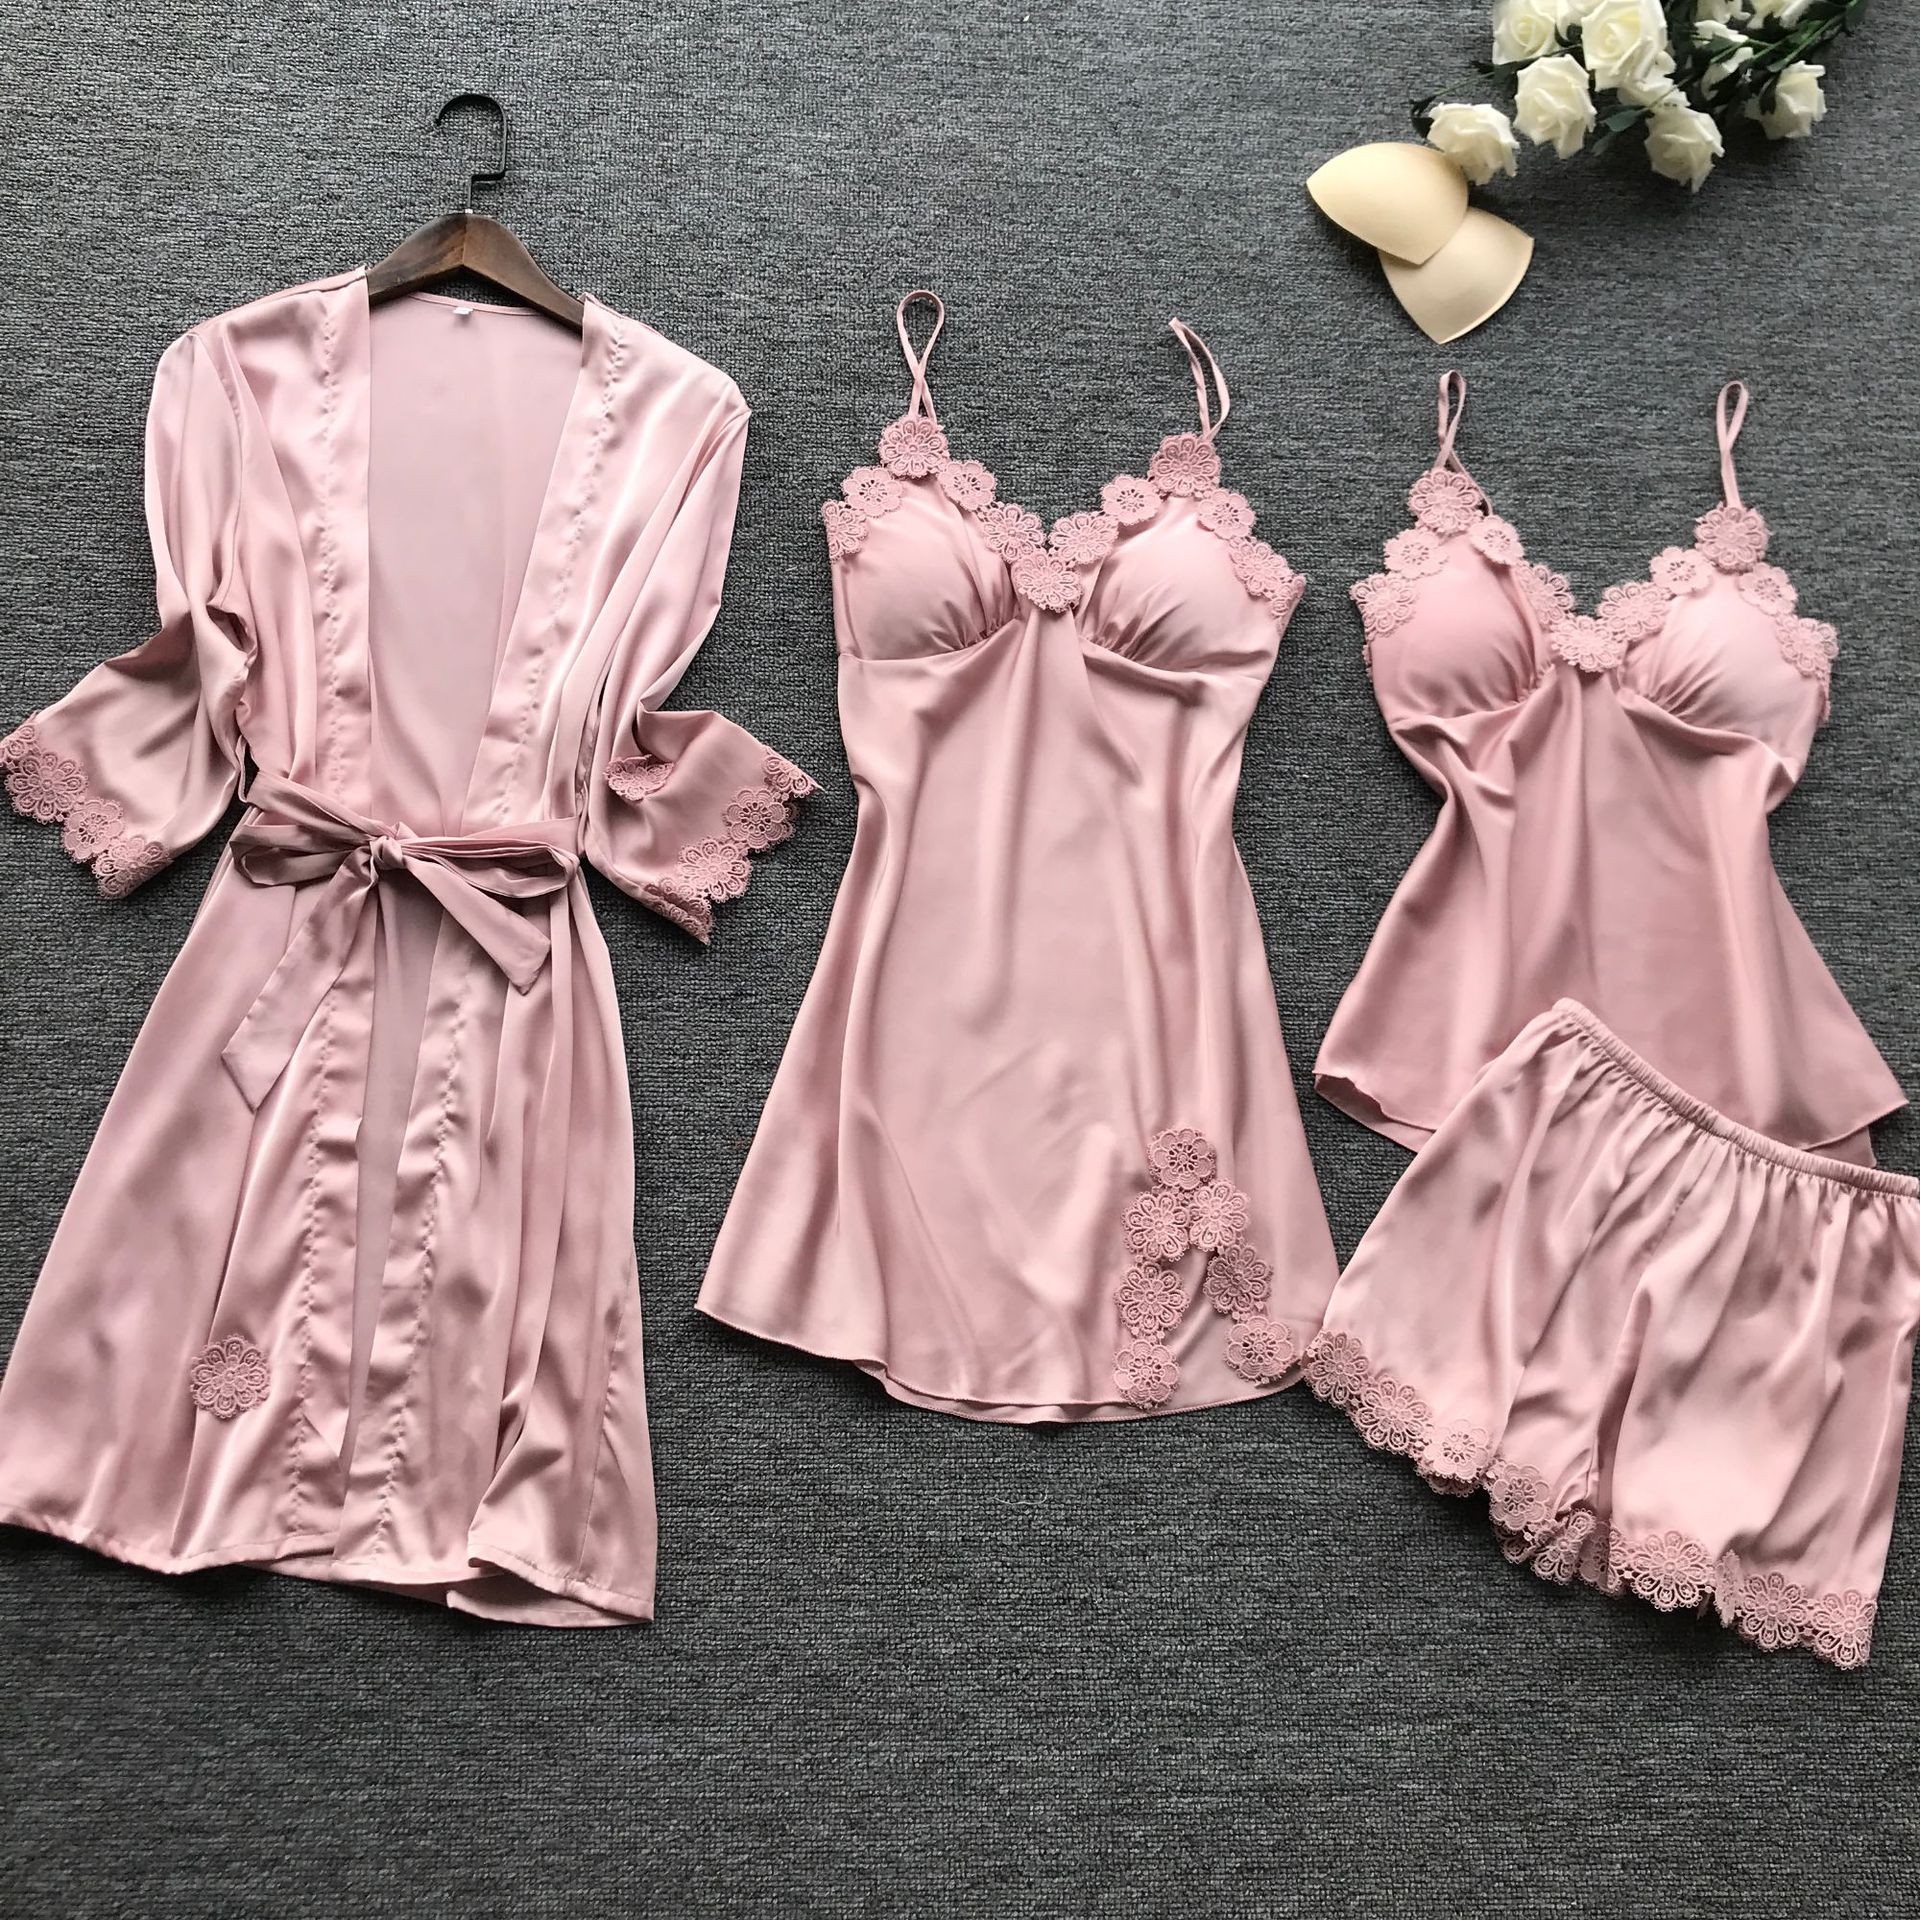 BZEL Sleepwear Women's 4 Pieces Pajama Sets Robe&Gown Sets Lace Dressing Gown Silk Satin Pyjama Femme Sexy Pijama Lounge Set